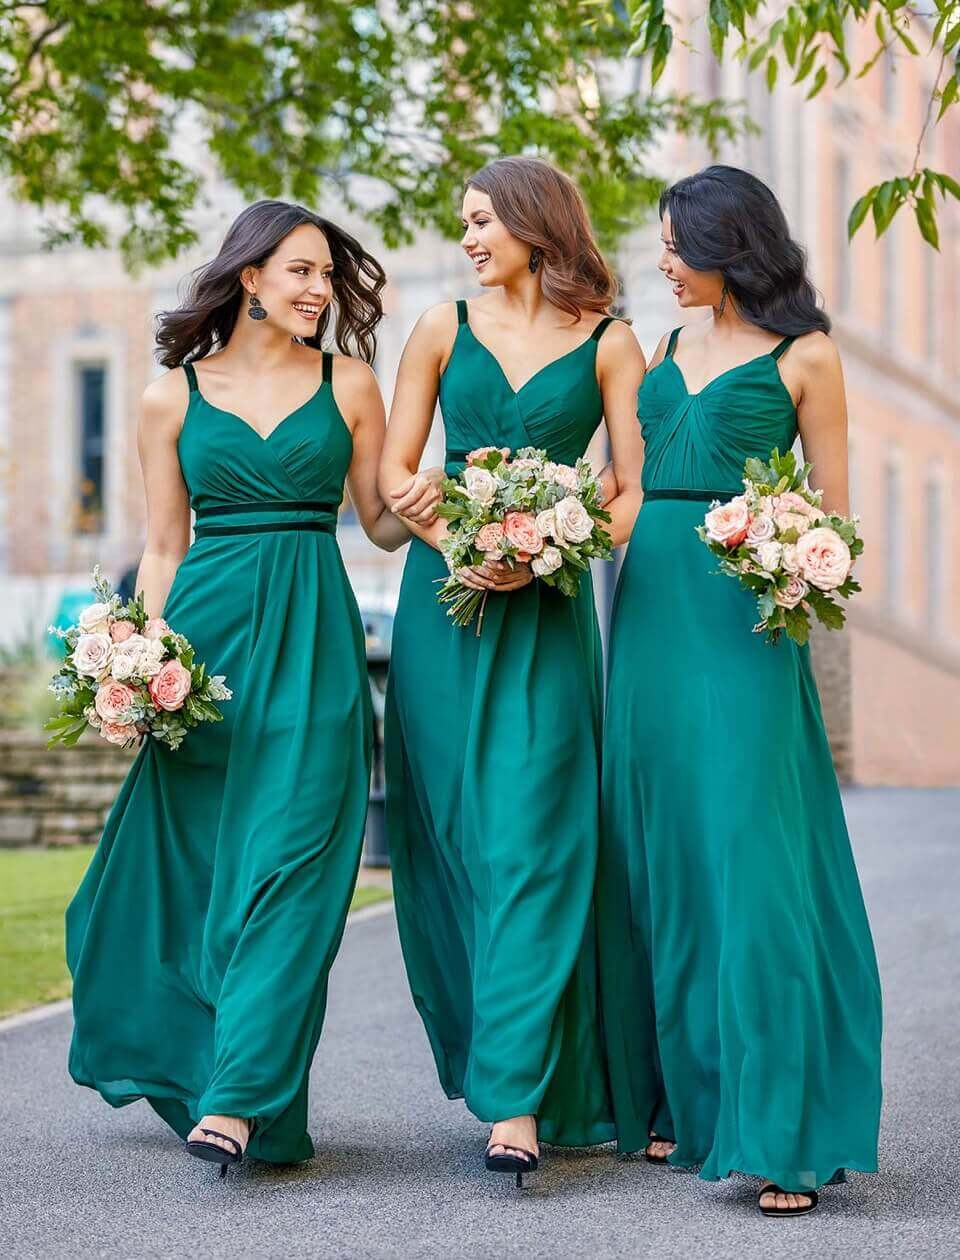 Bridesmaids wearing long green dresses